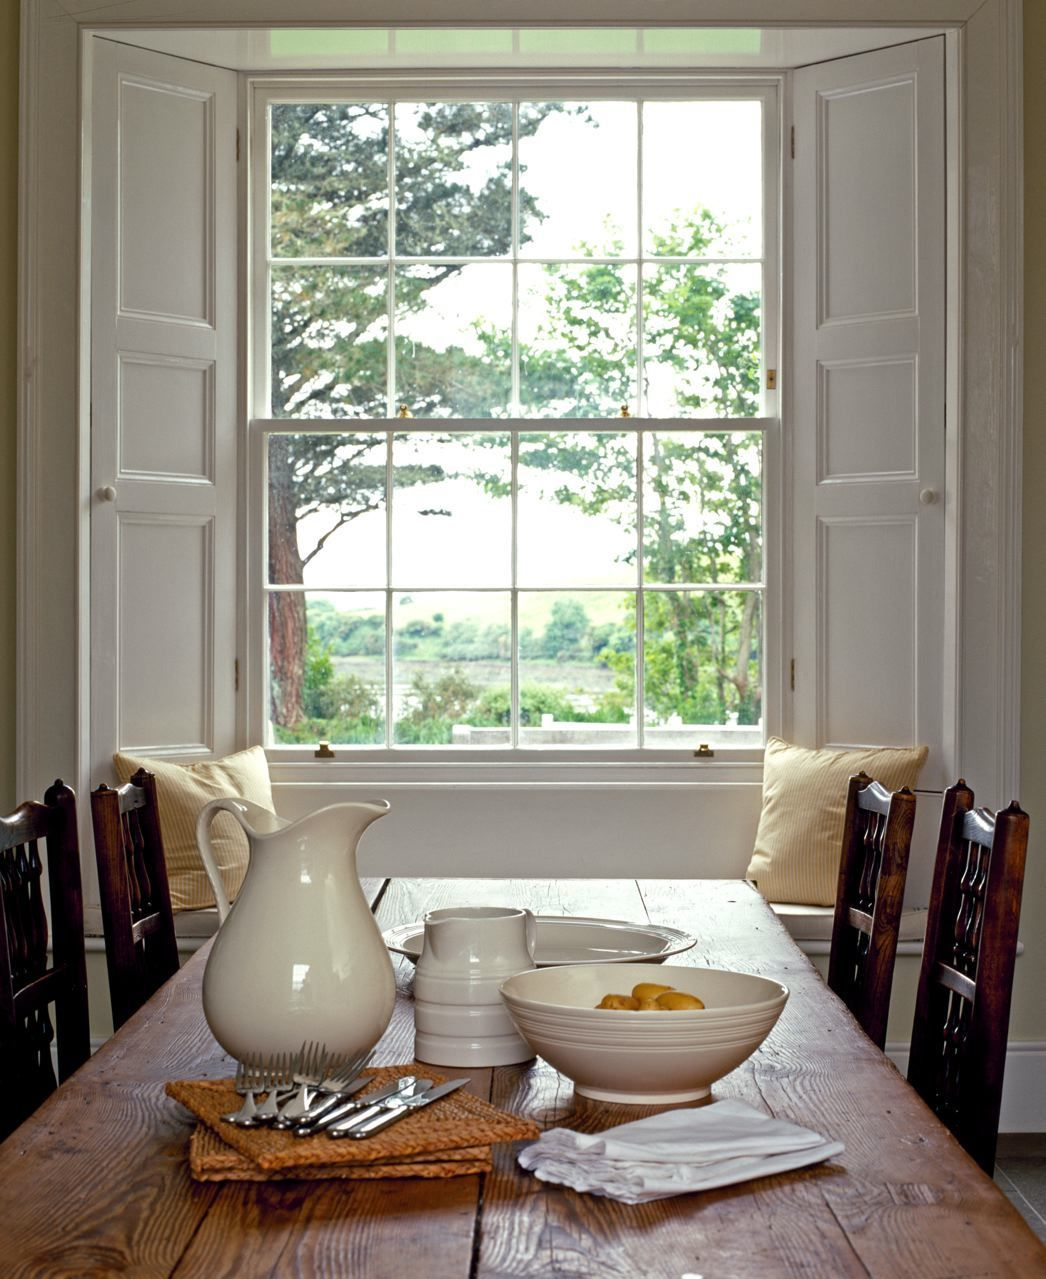 Irish Country Kitchens Tricia Foley Irish Farm Table And Wonderful Built In Interior